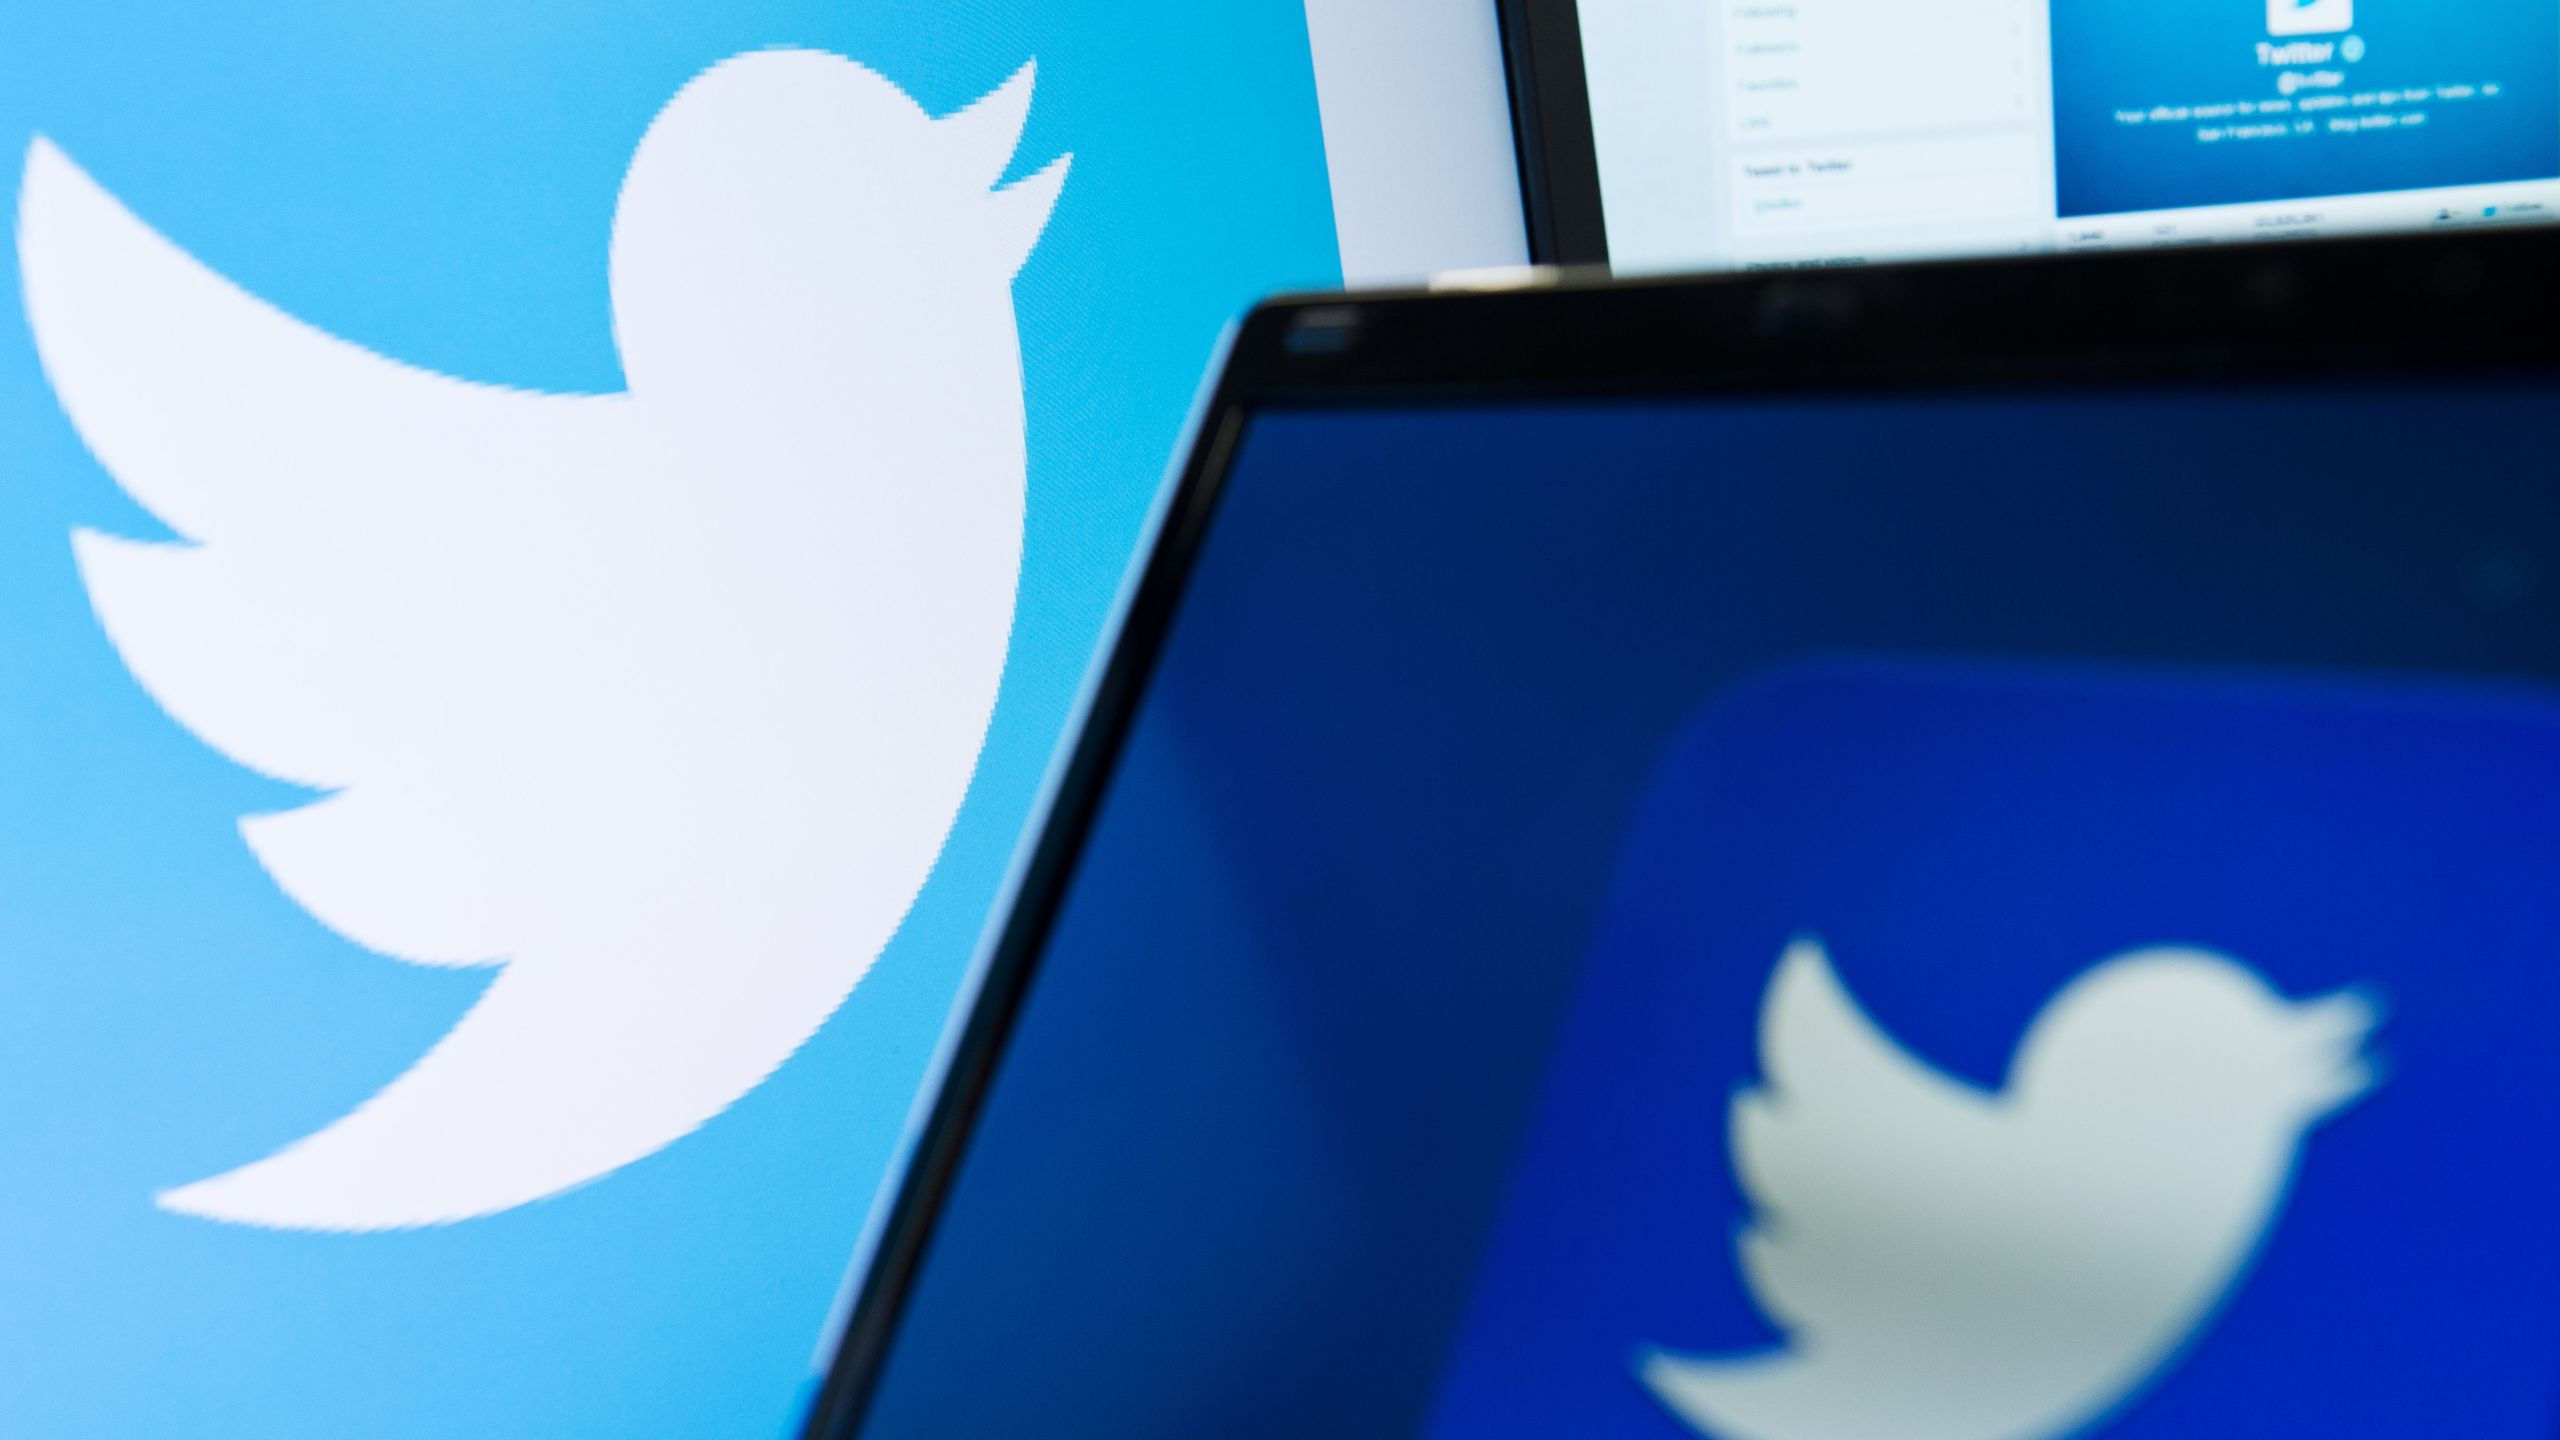 The logo of social networking website Twitter is displayed on a computer screen in a file photo. (Credit: Leon Neal / AFP / Getty Images)